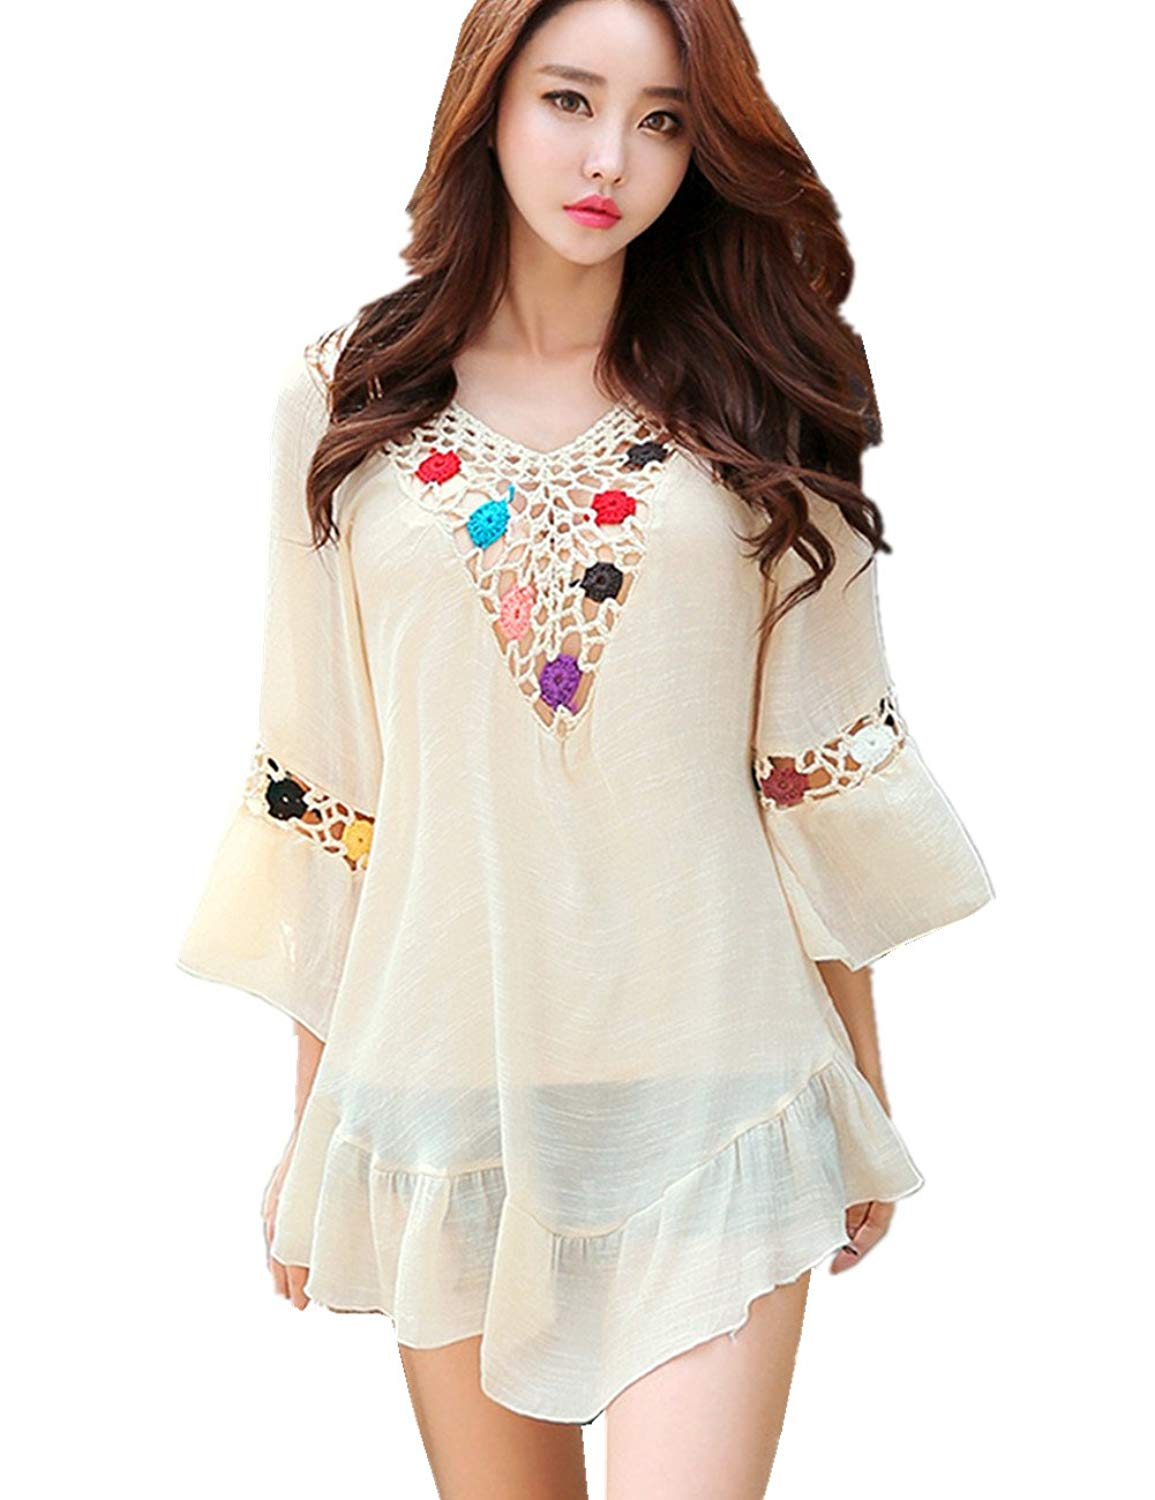 dc258ac486 Get Quotations · L-Peach Women's Summer V Neck Floral Knitted Crochet Tunic  Pareo Bikini Cover up Fashion